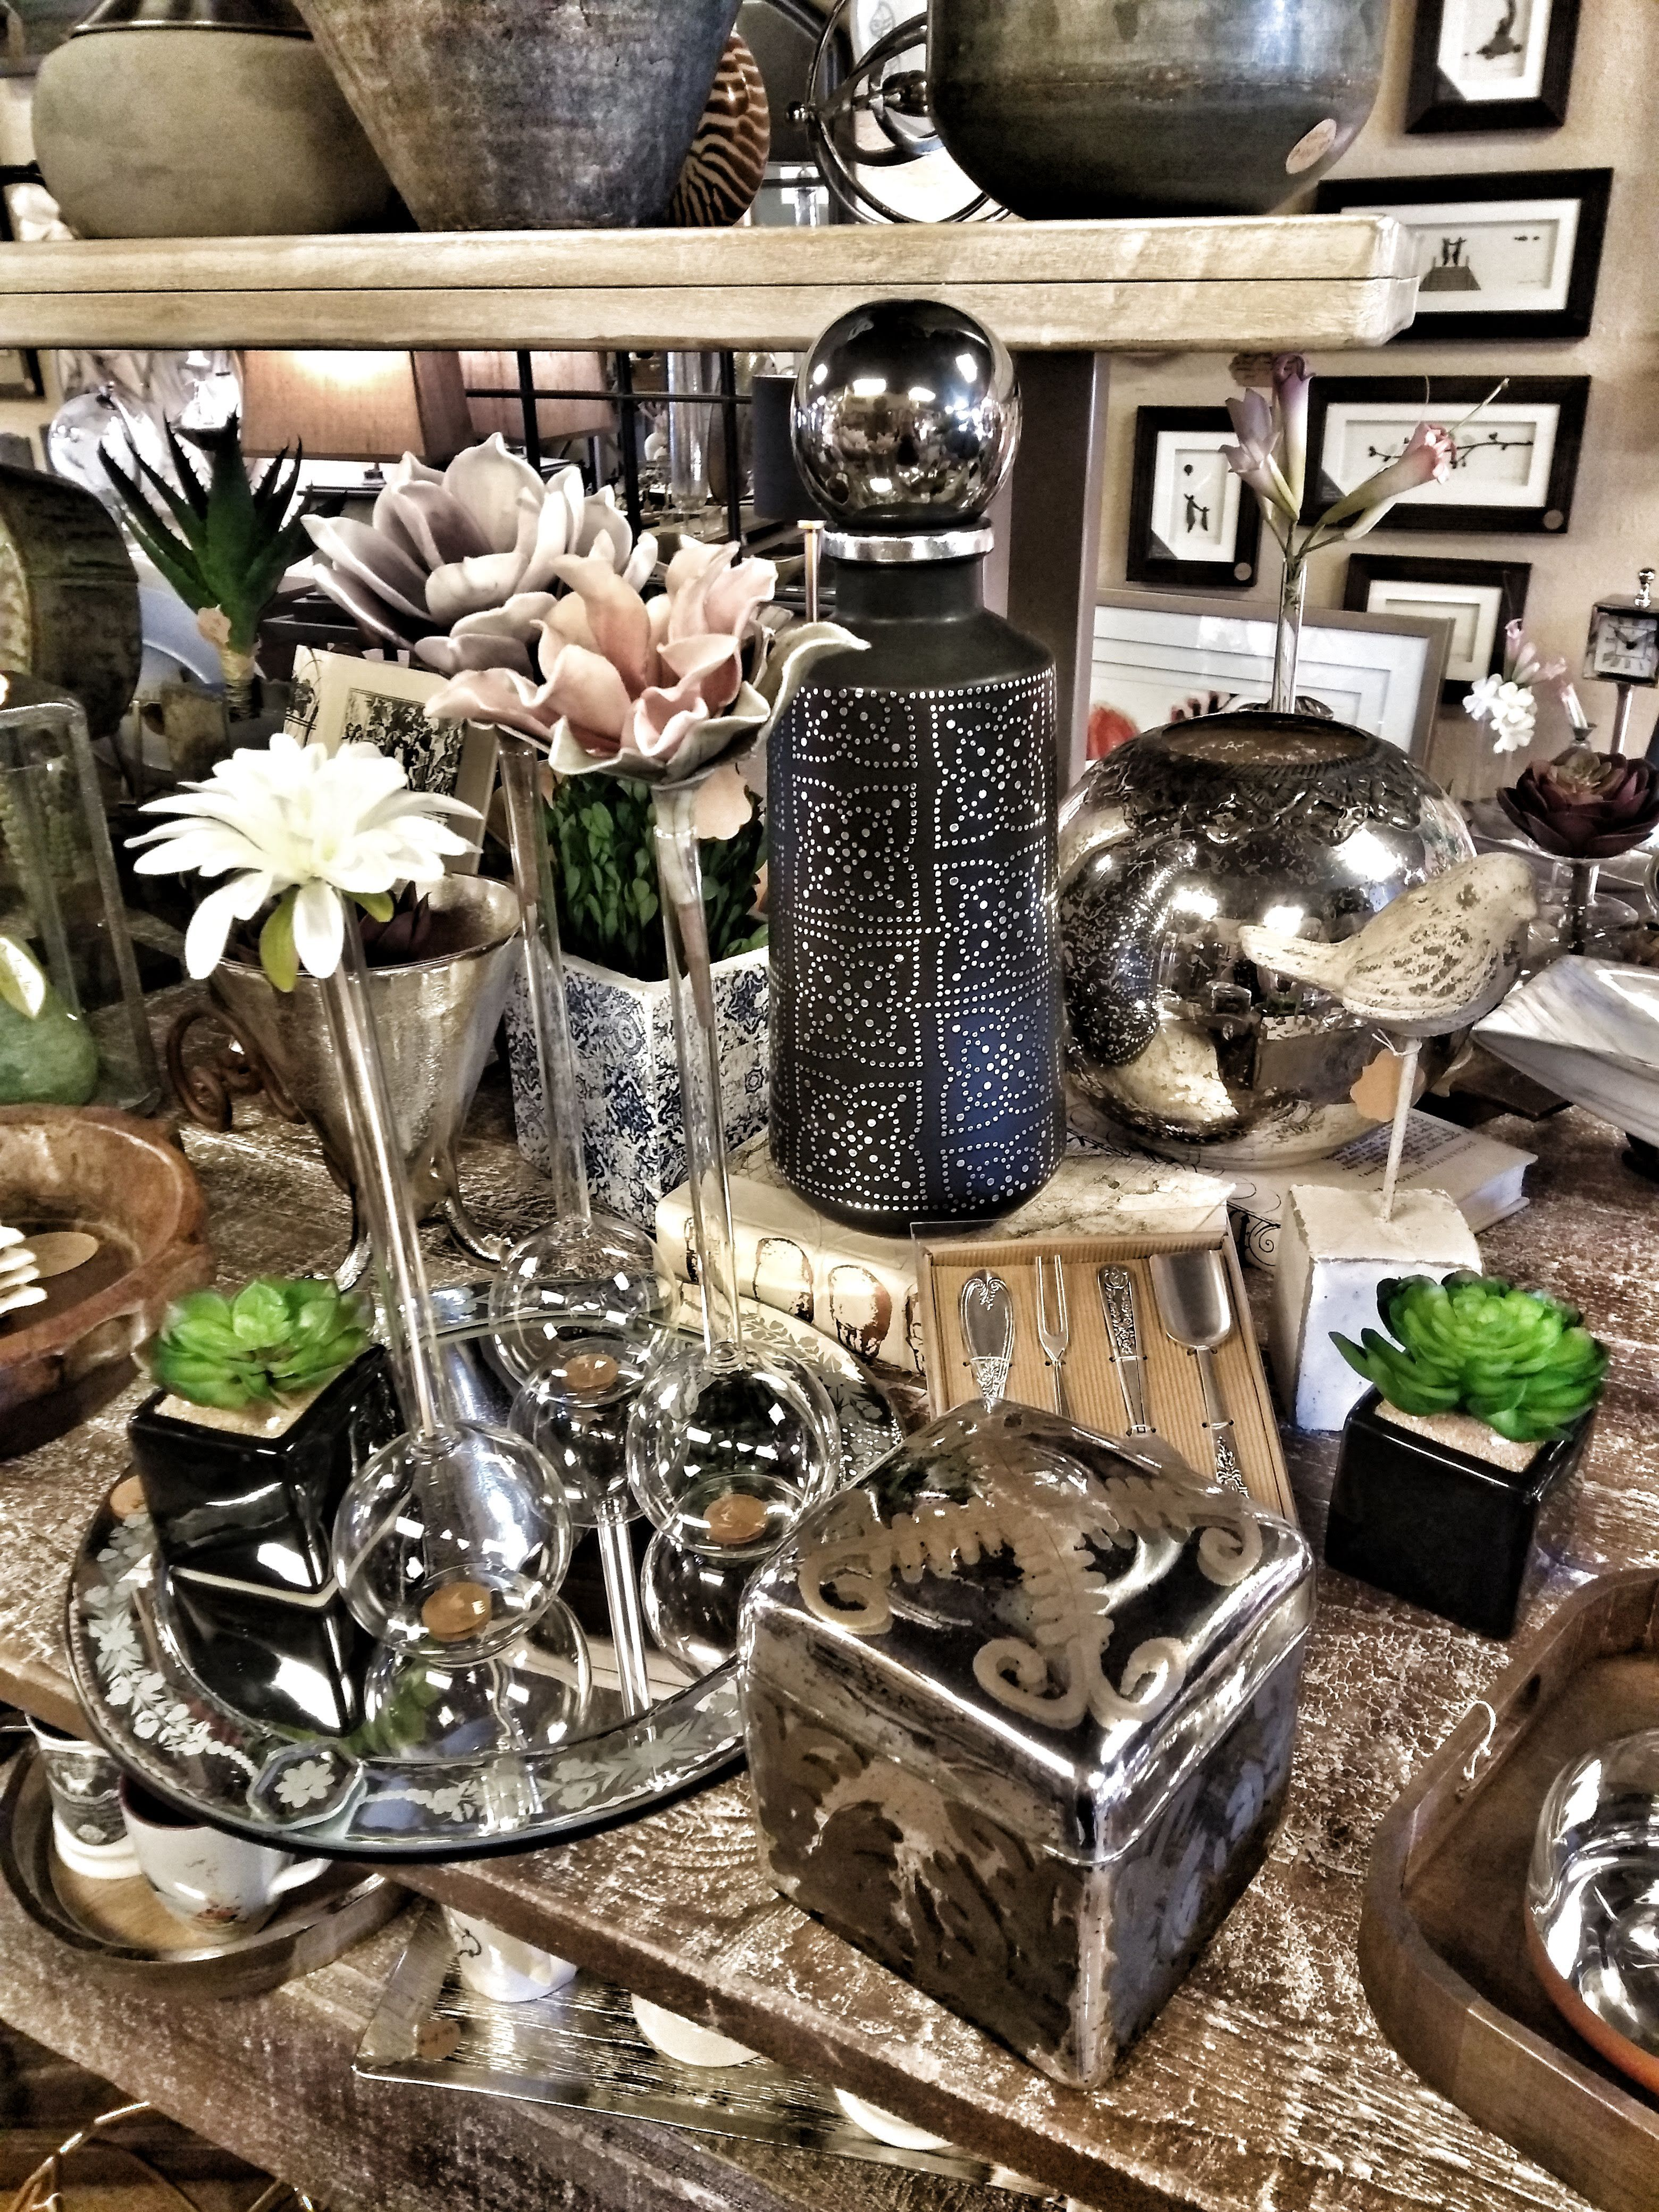 Shine Bright Www Bellahomemarket Com 1532 Land O Lakes Blvd Lutz Fl 33549 813 345 8038 Located Next To The Br Breakfast Nook Sweet Home Home Decor